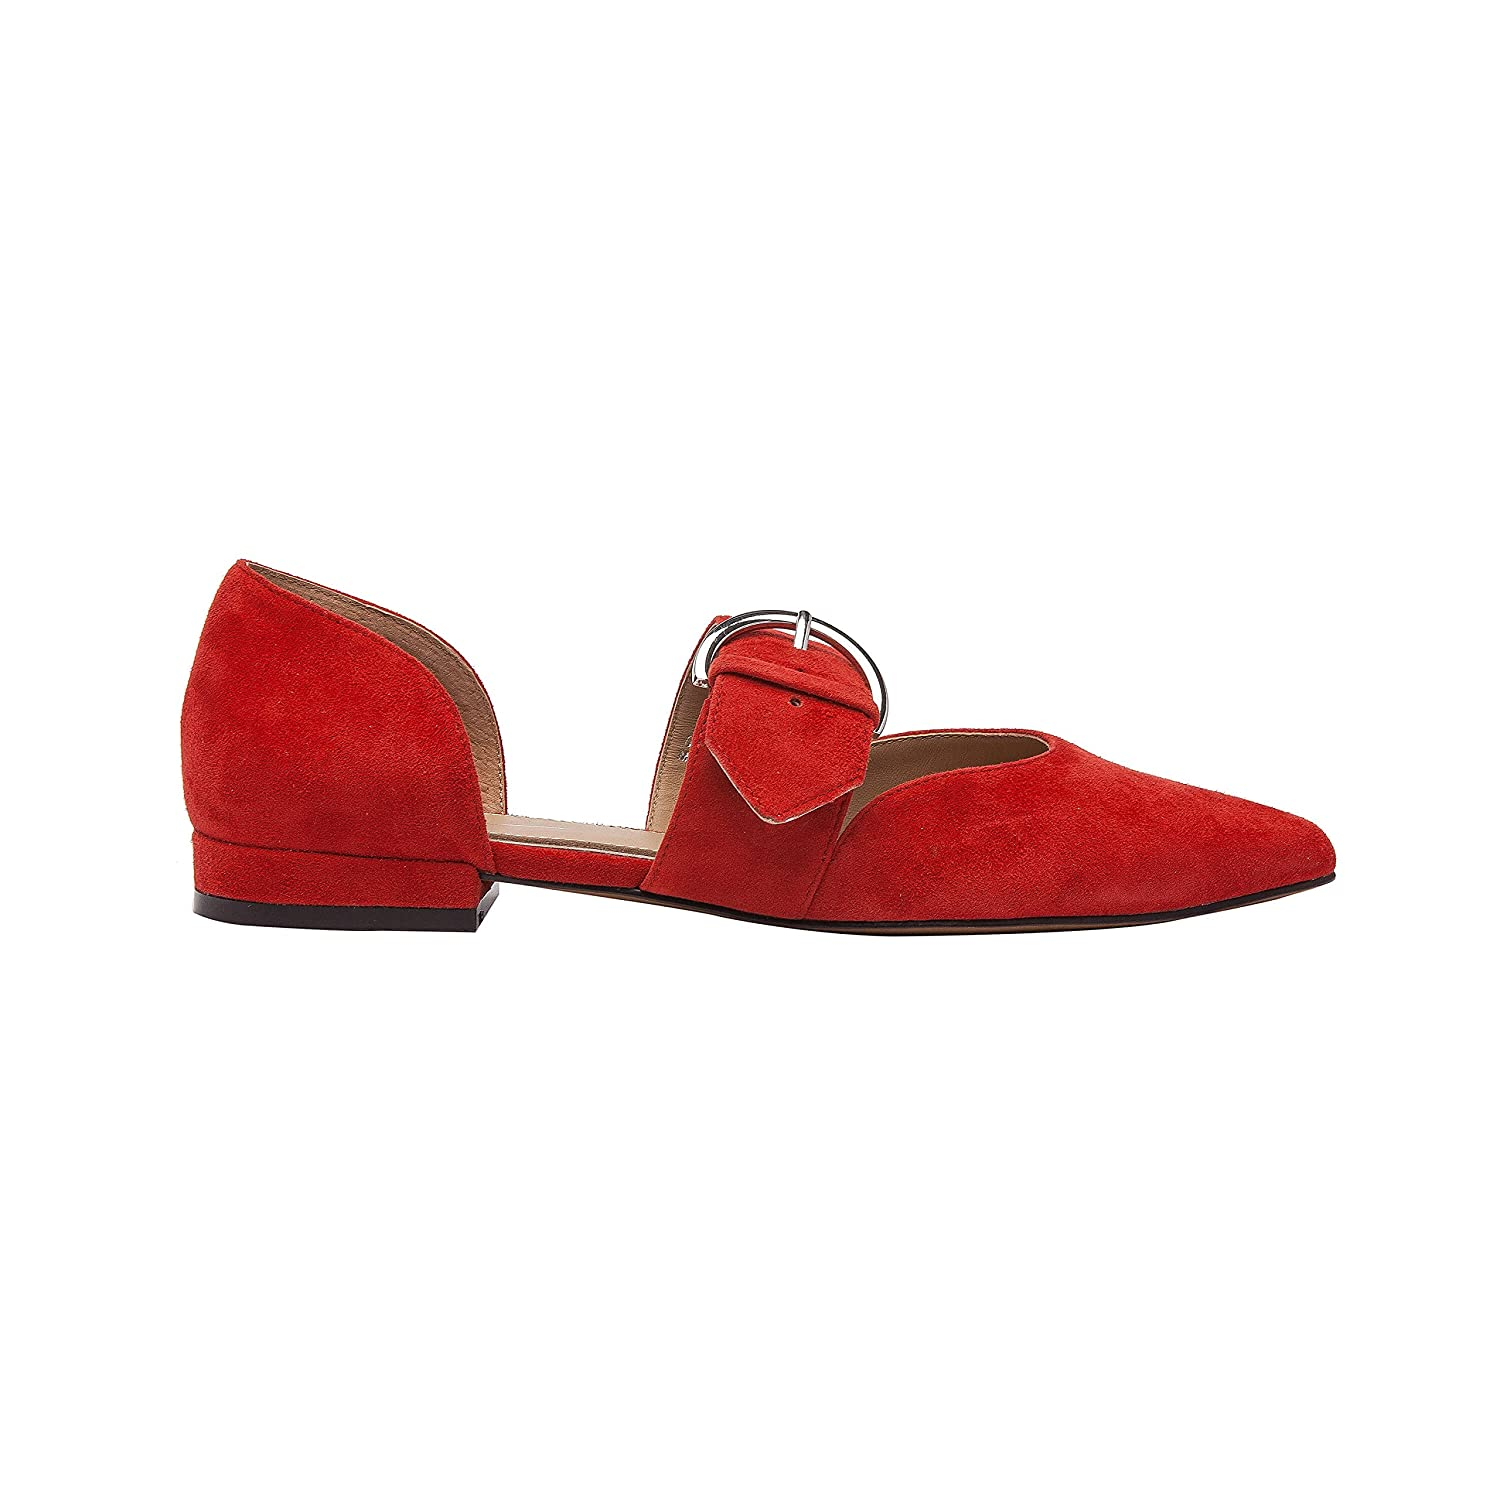 Dean | Women's Two Piece Pointy Toe Comfortable Leather or Suede Ballet Flat B07DM9QFB5 8.5 M US|Red Suede